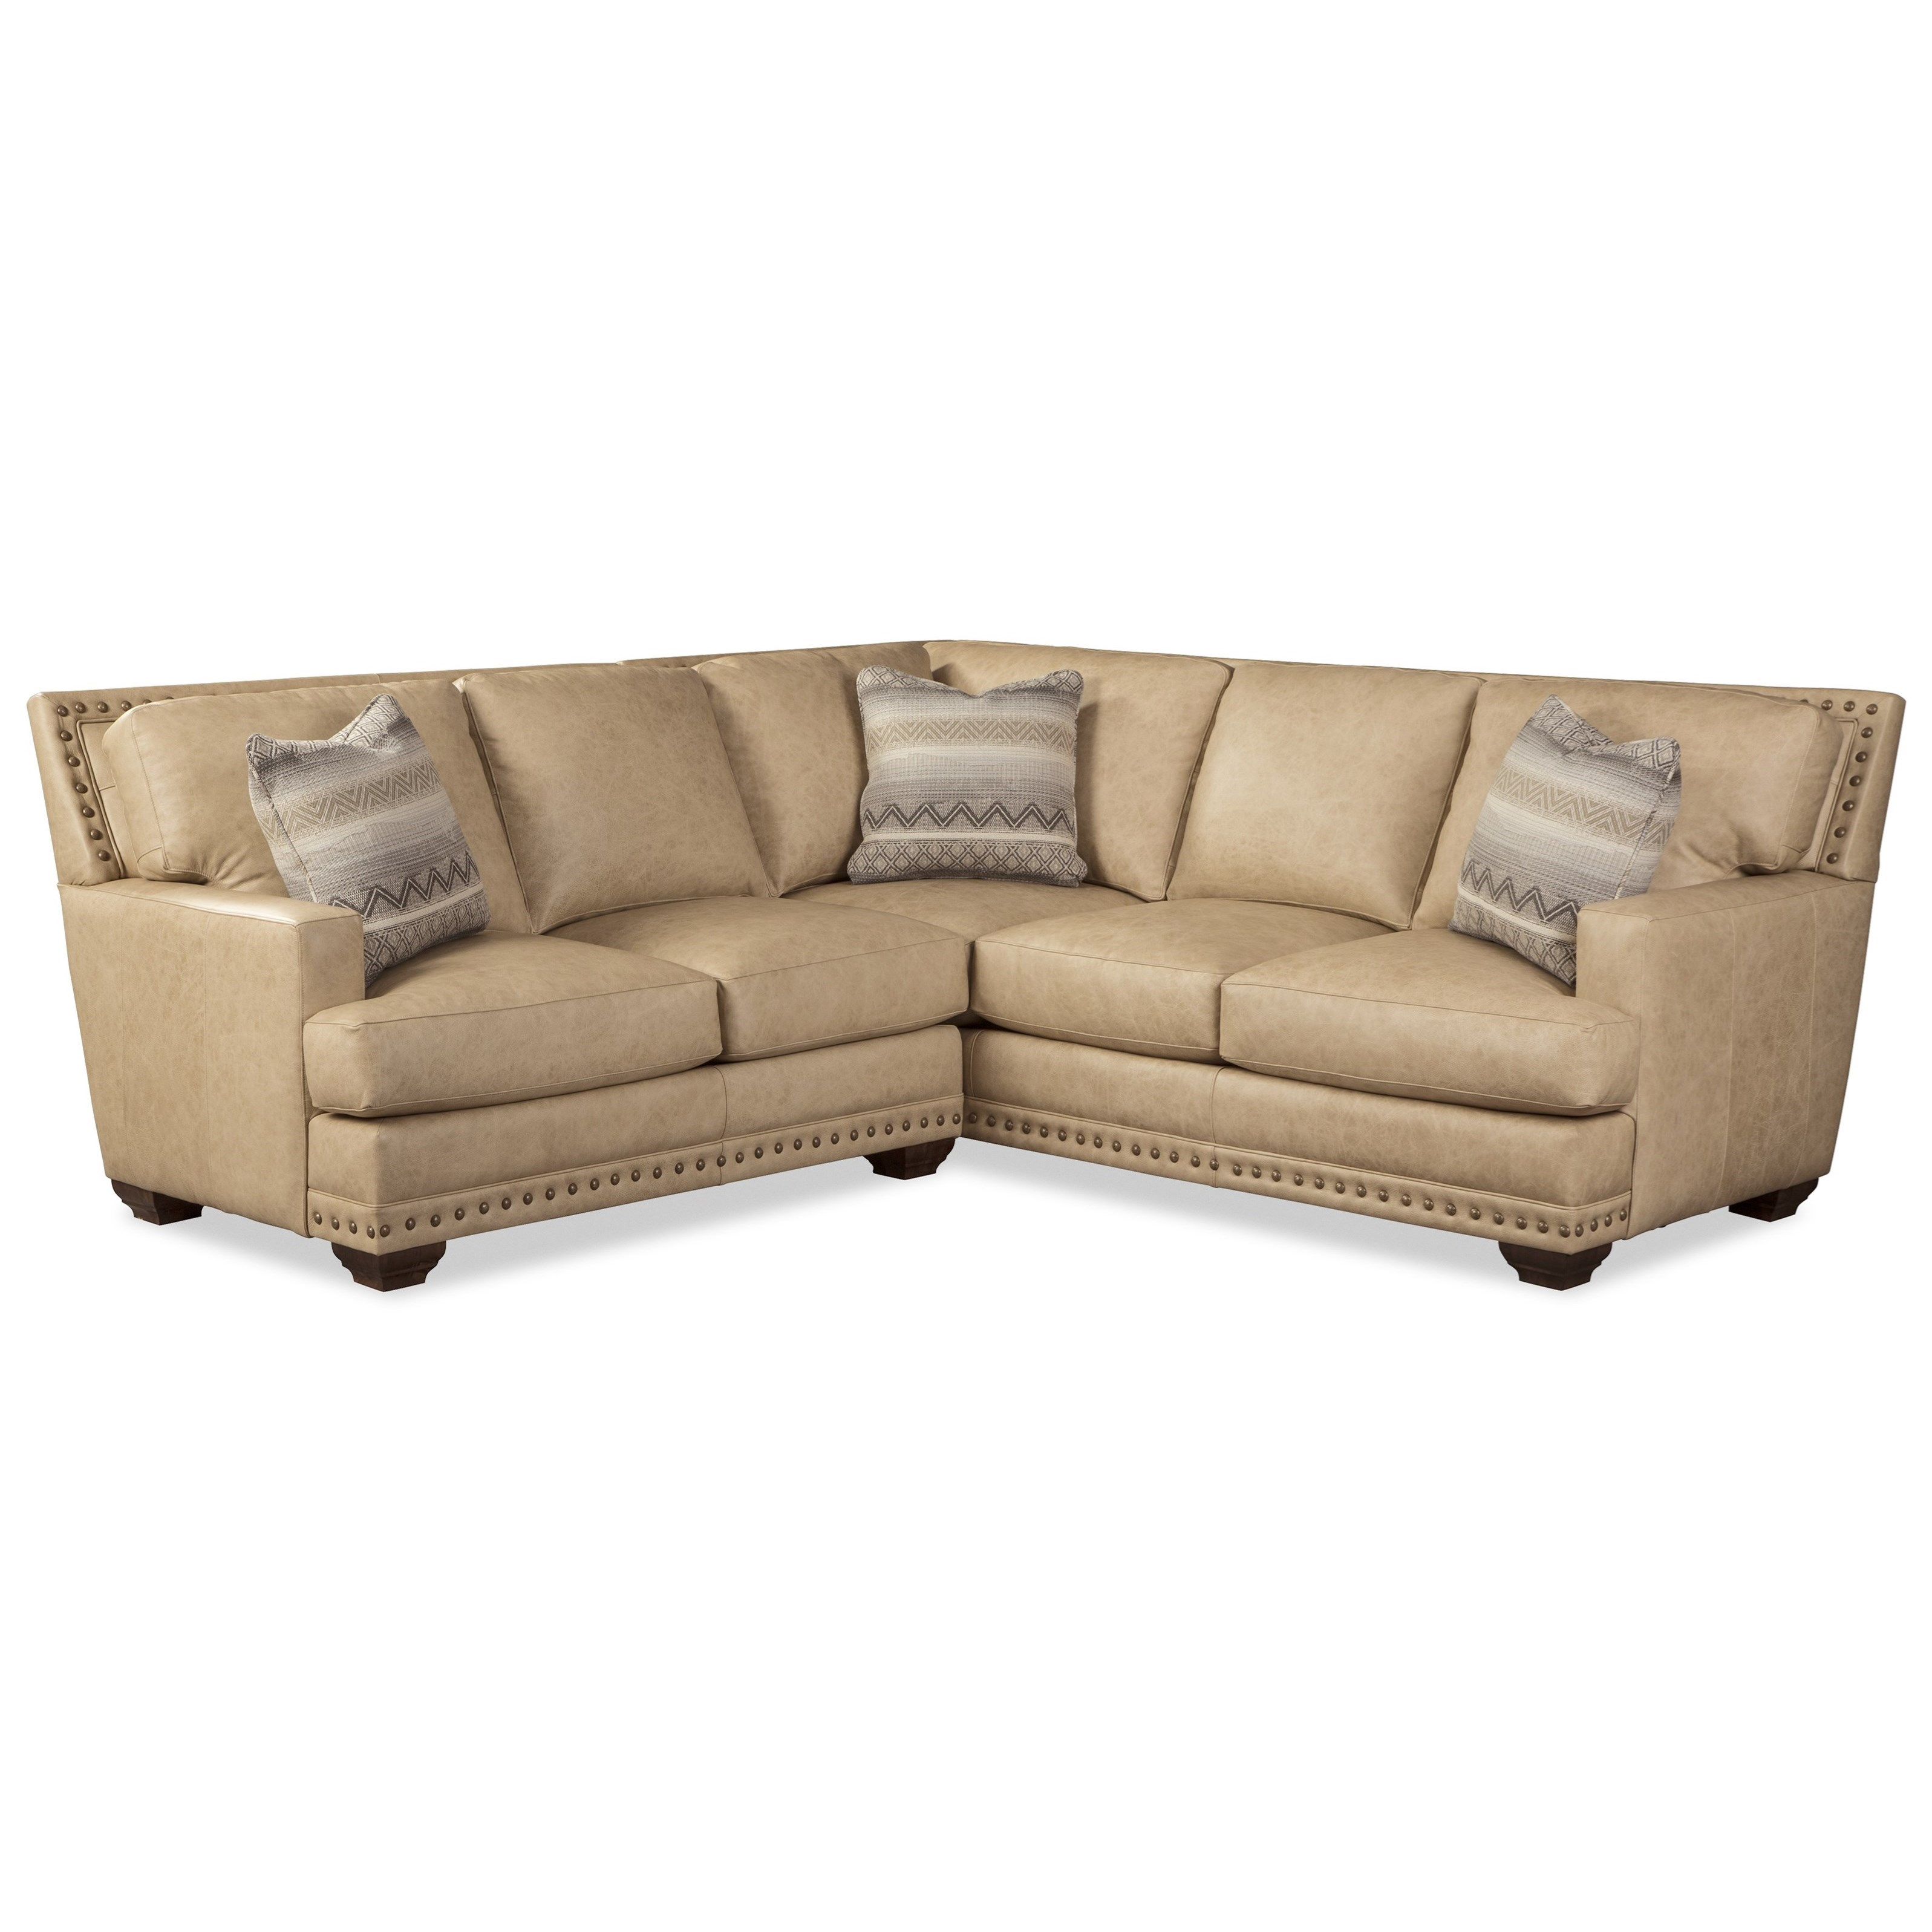 4 seat leather sectional sofa